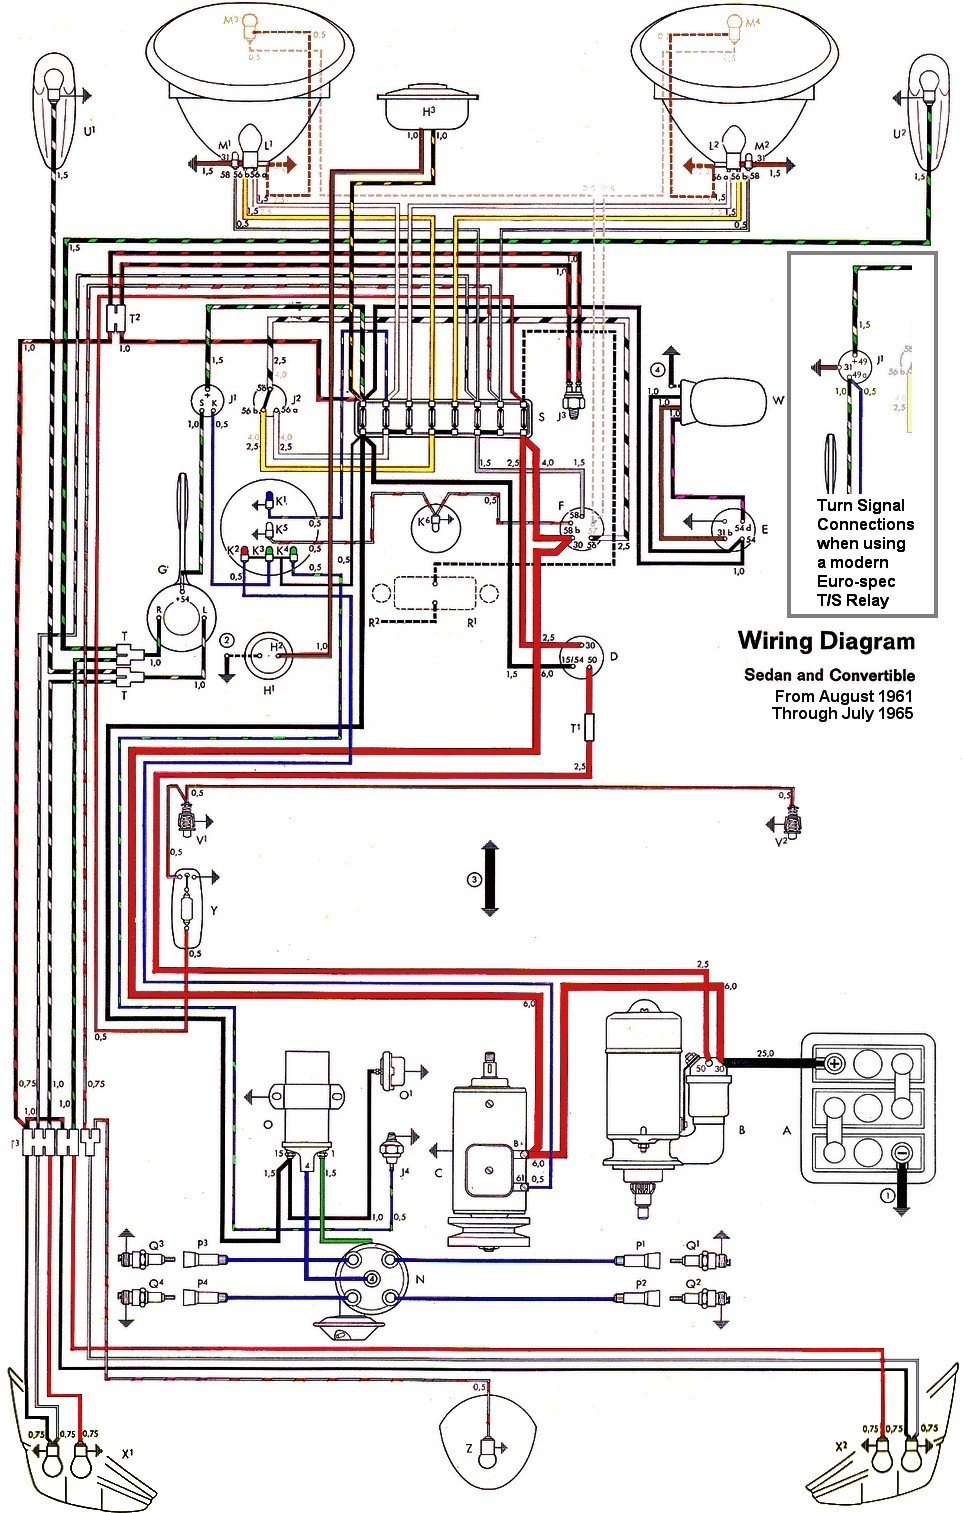 bug_62 65withinset thesamba com type 1 wiring diagrams 1970 vw bug wiring diagram at alyssarenee.co